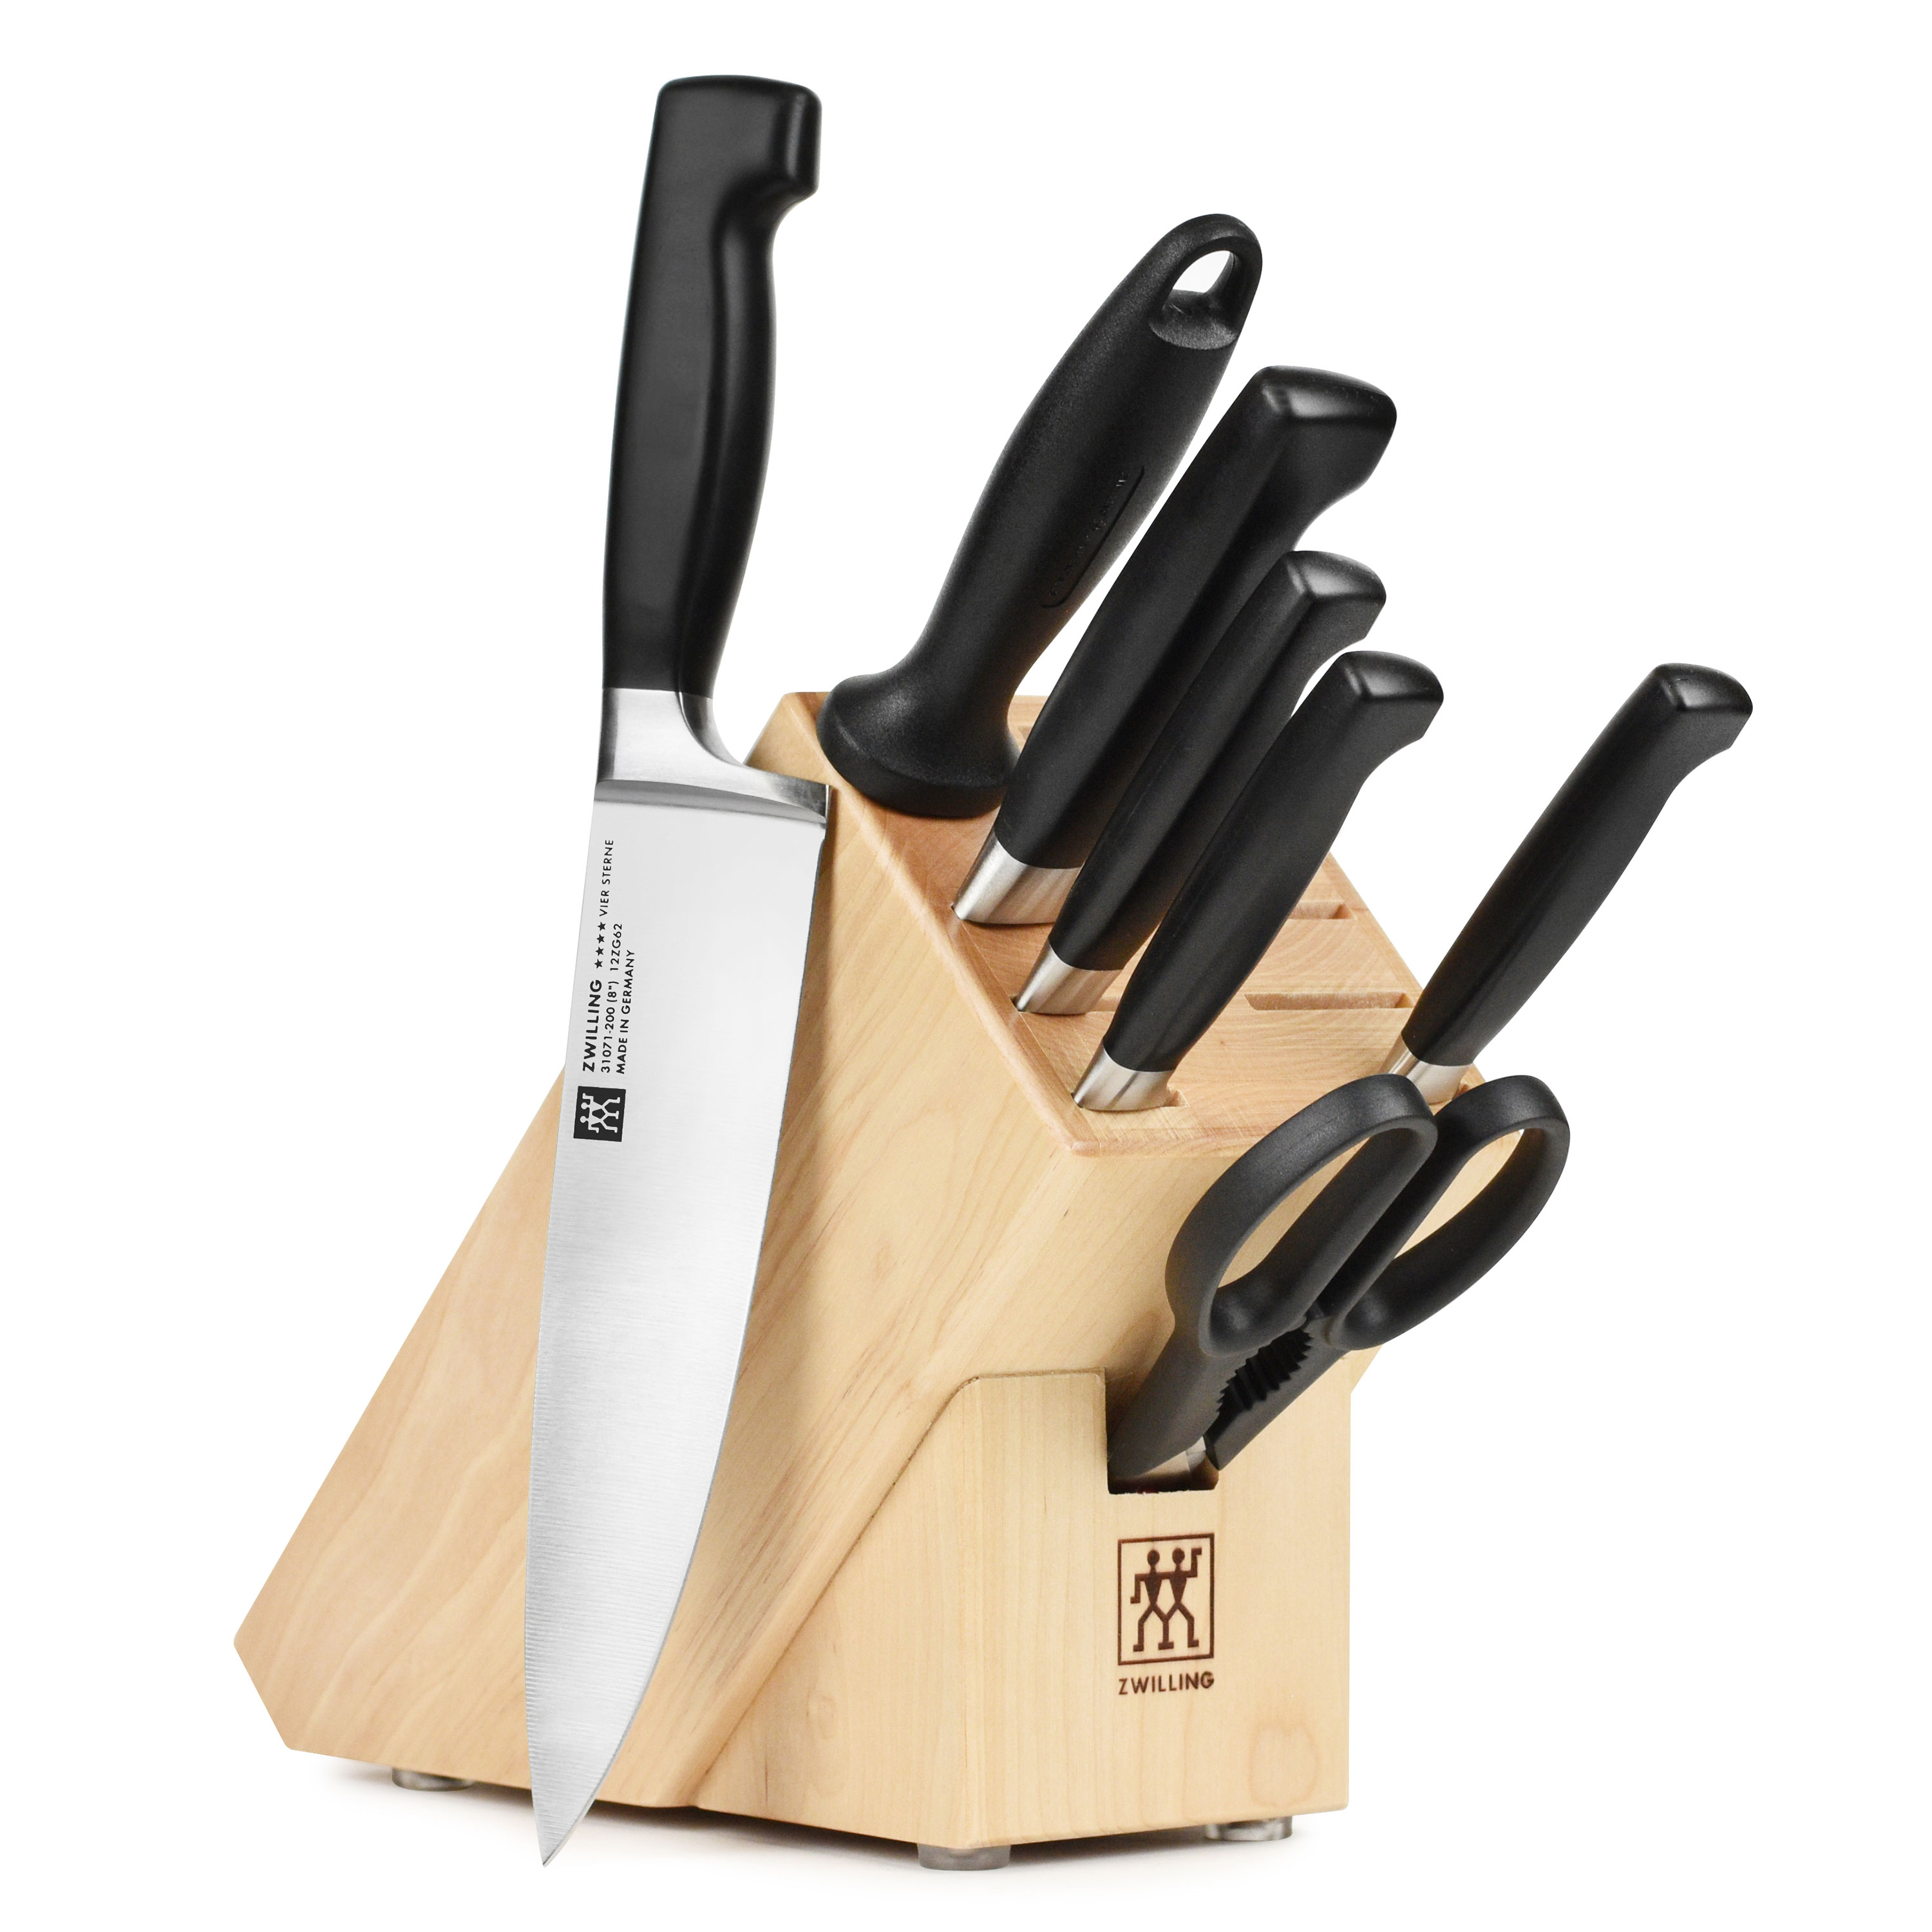 knives henckels zwilling four star set 8 piece with knife block by j a